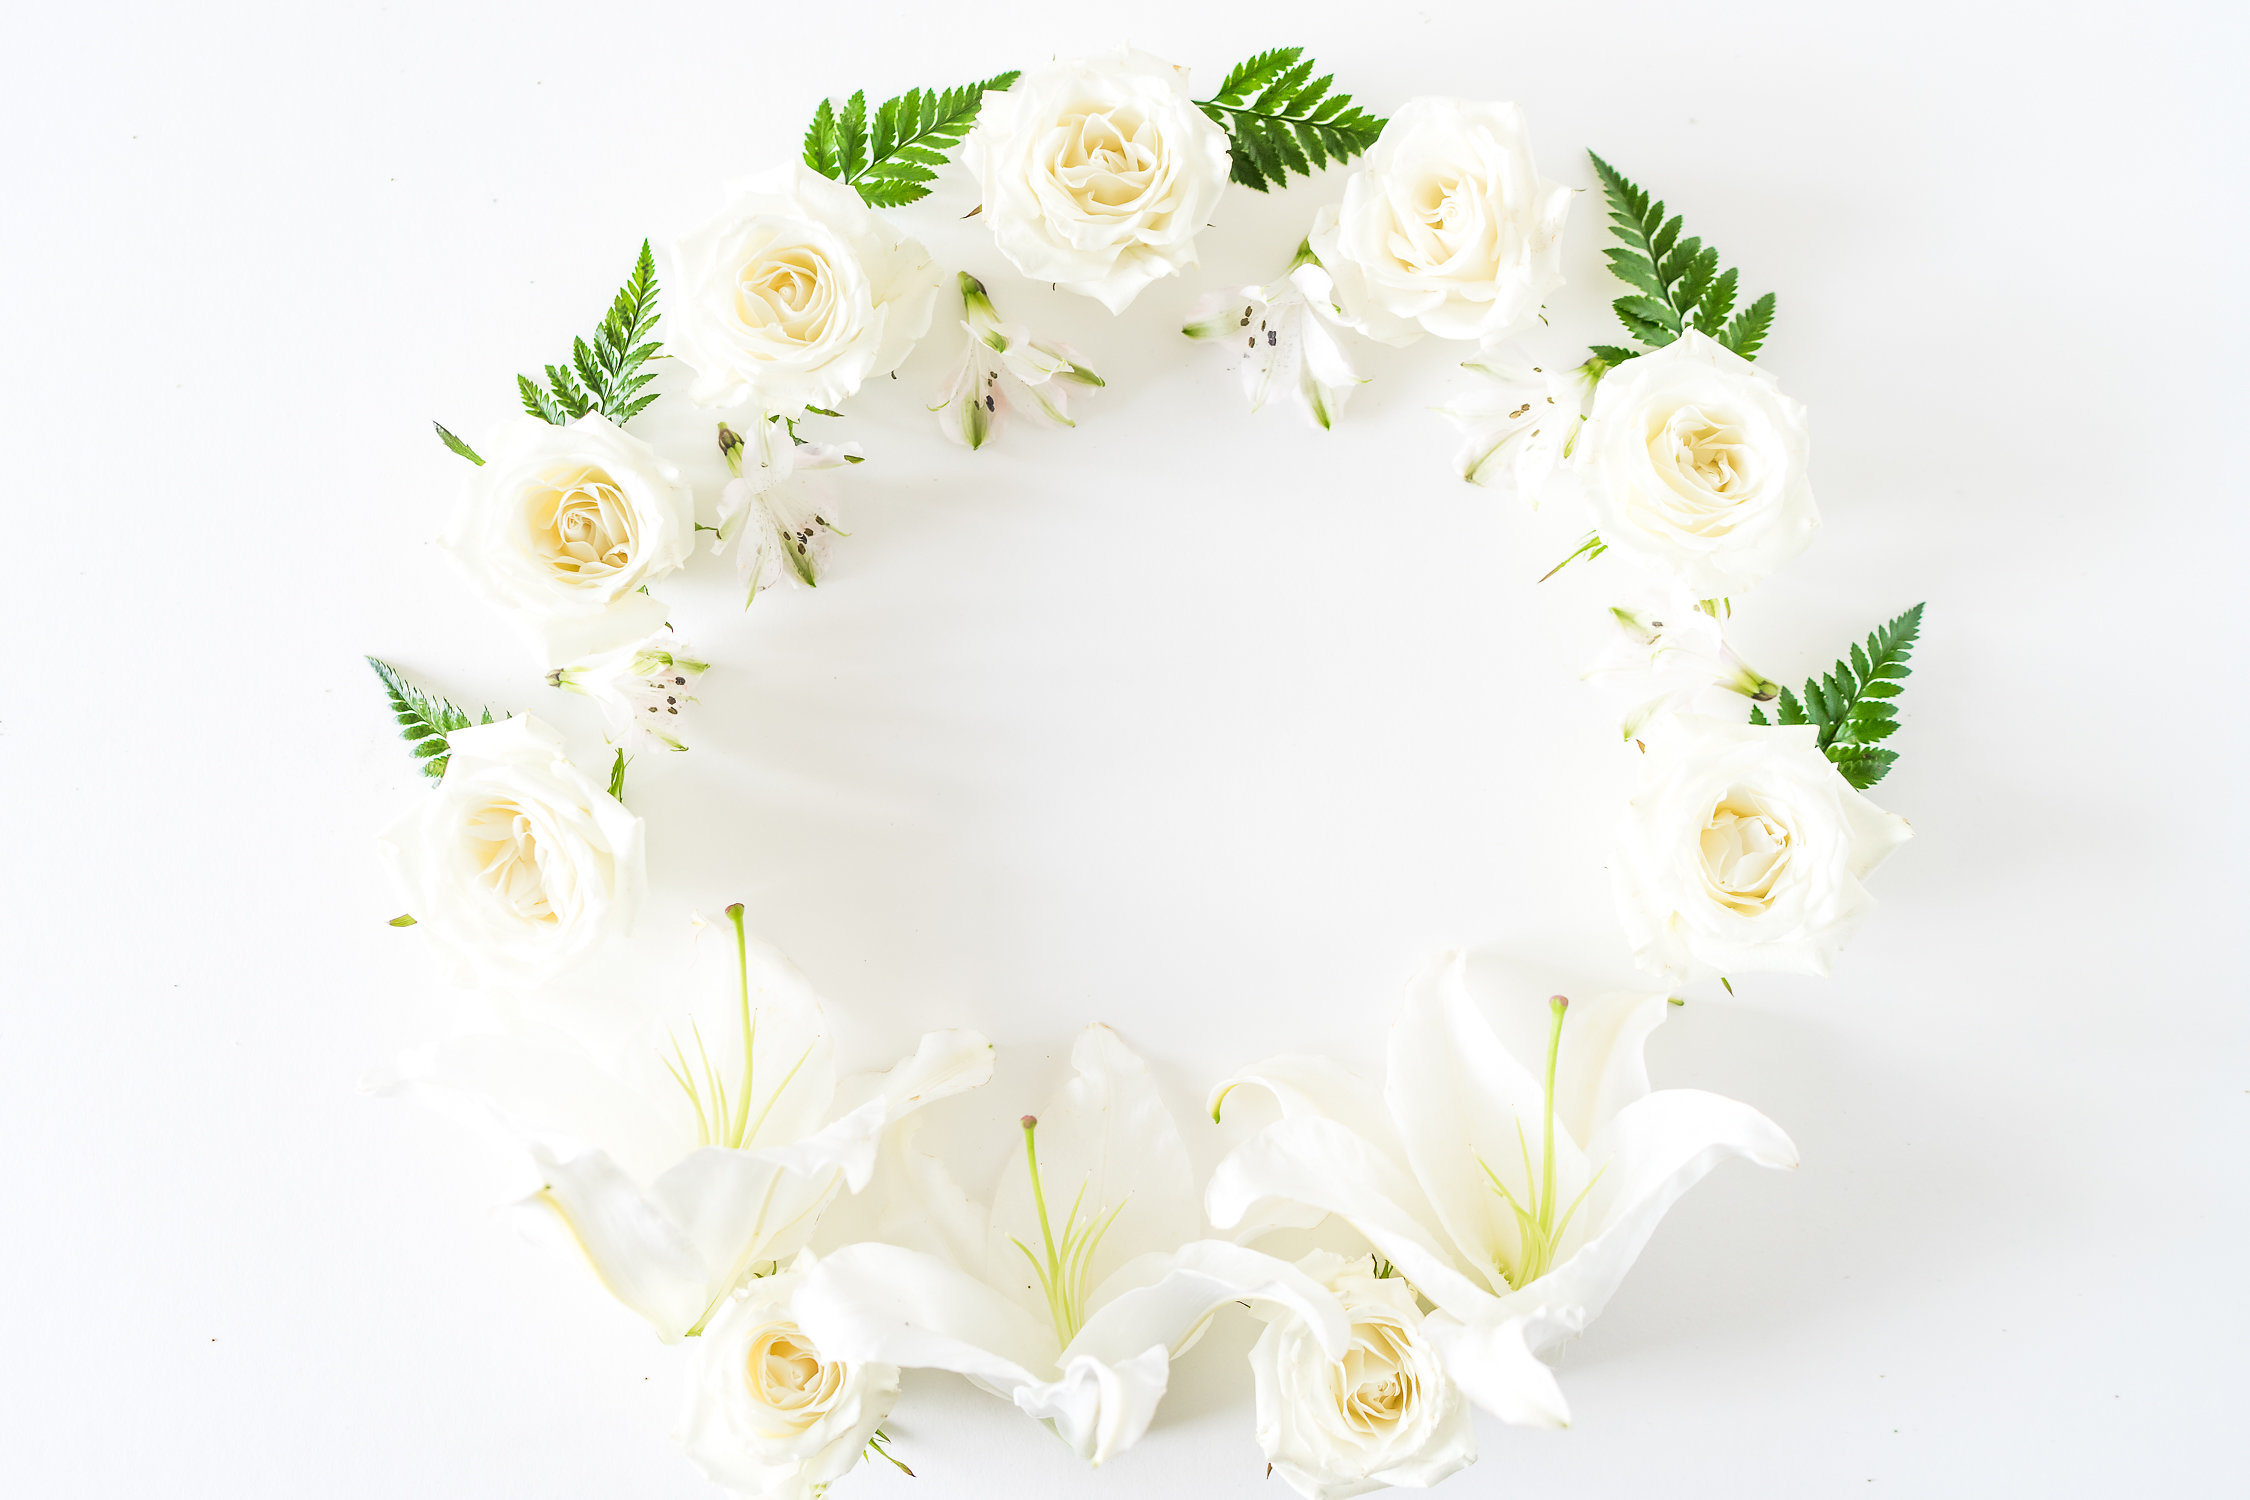 What Does a White Rose Mean?